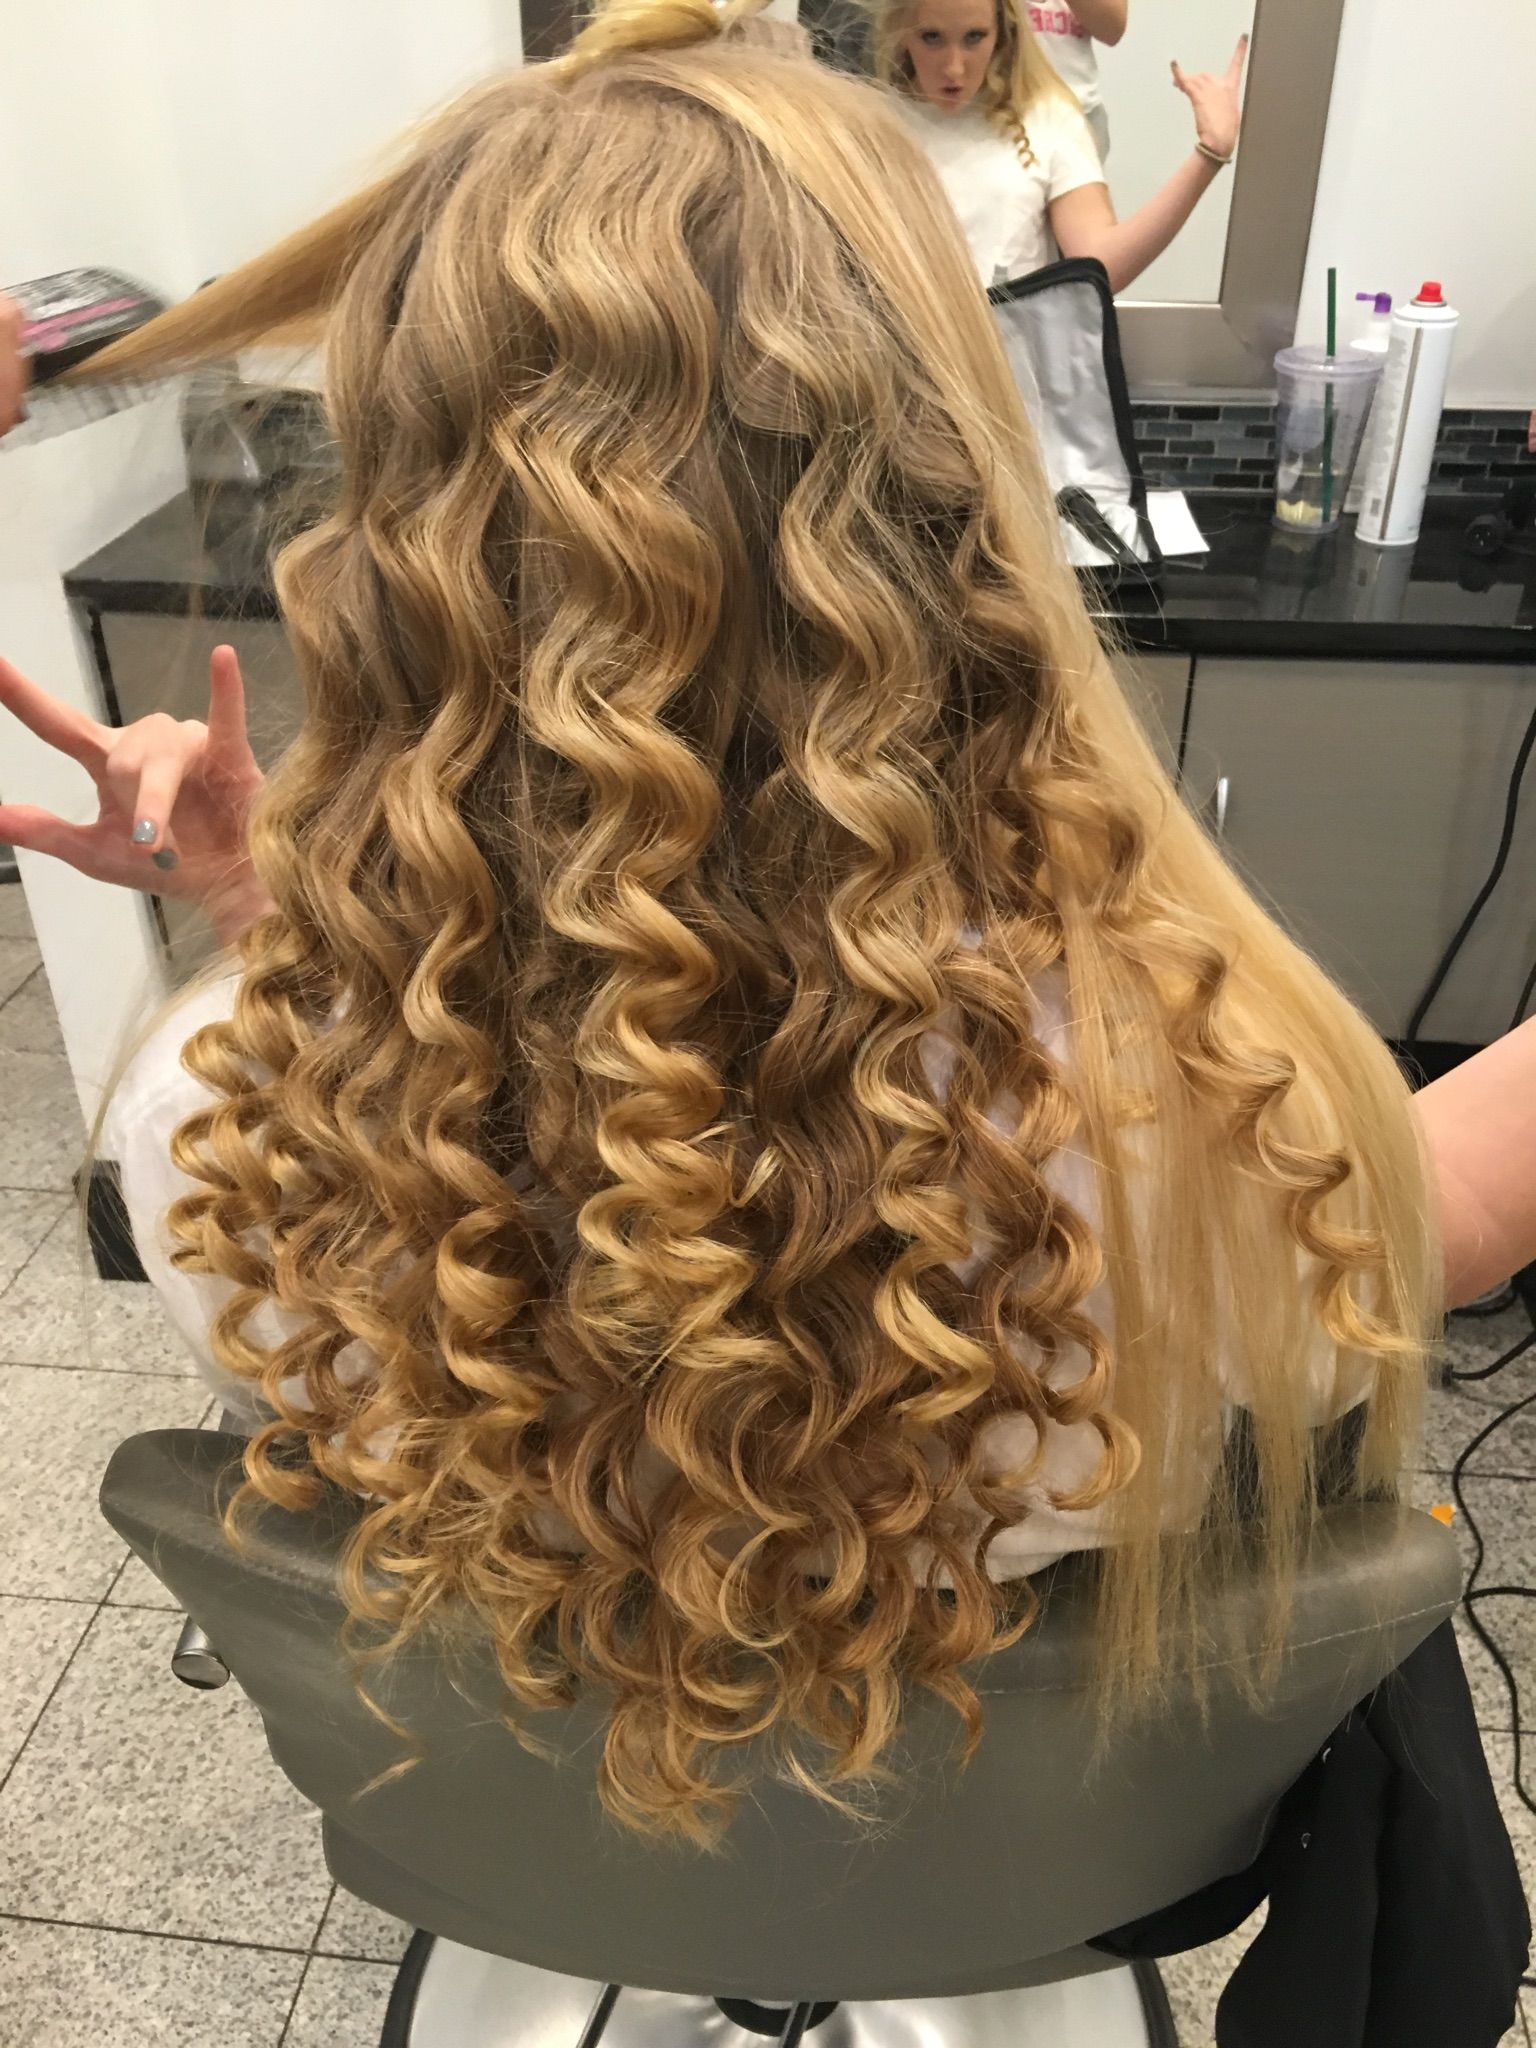 Super Straight Hair Made Curly With A Tapered Curling Wand For A